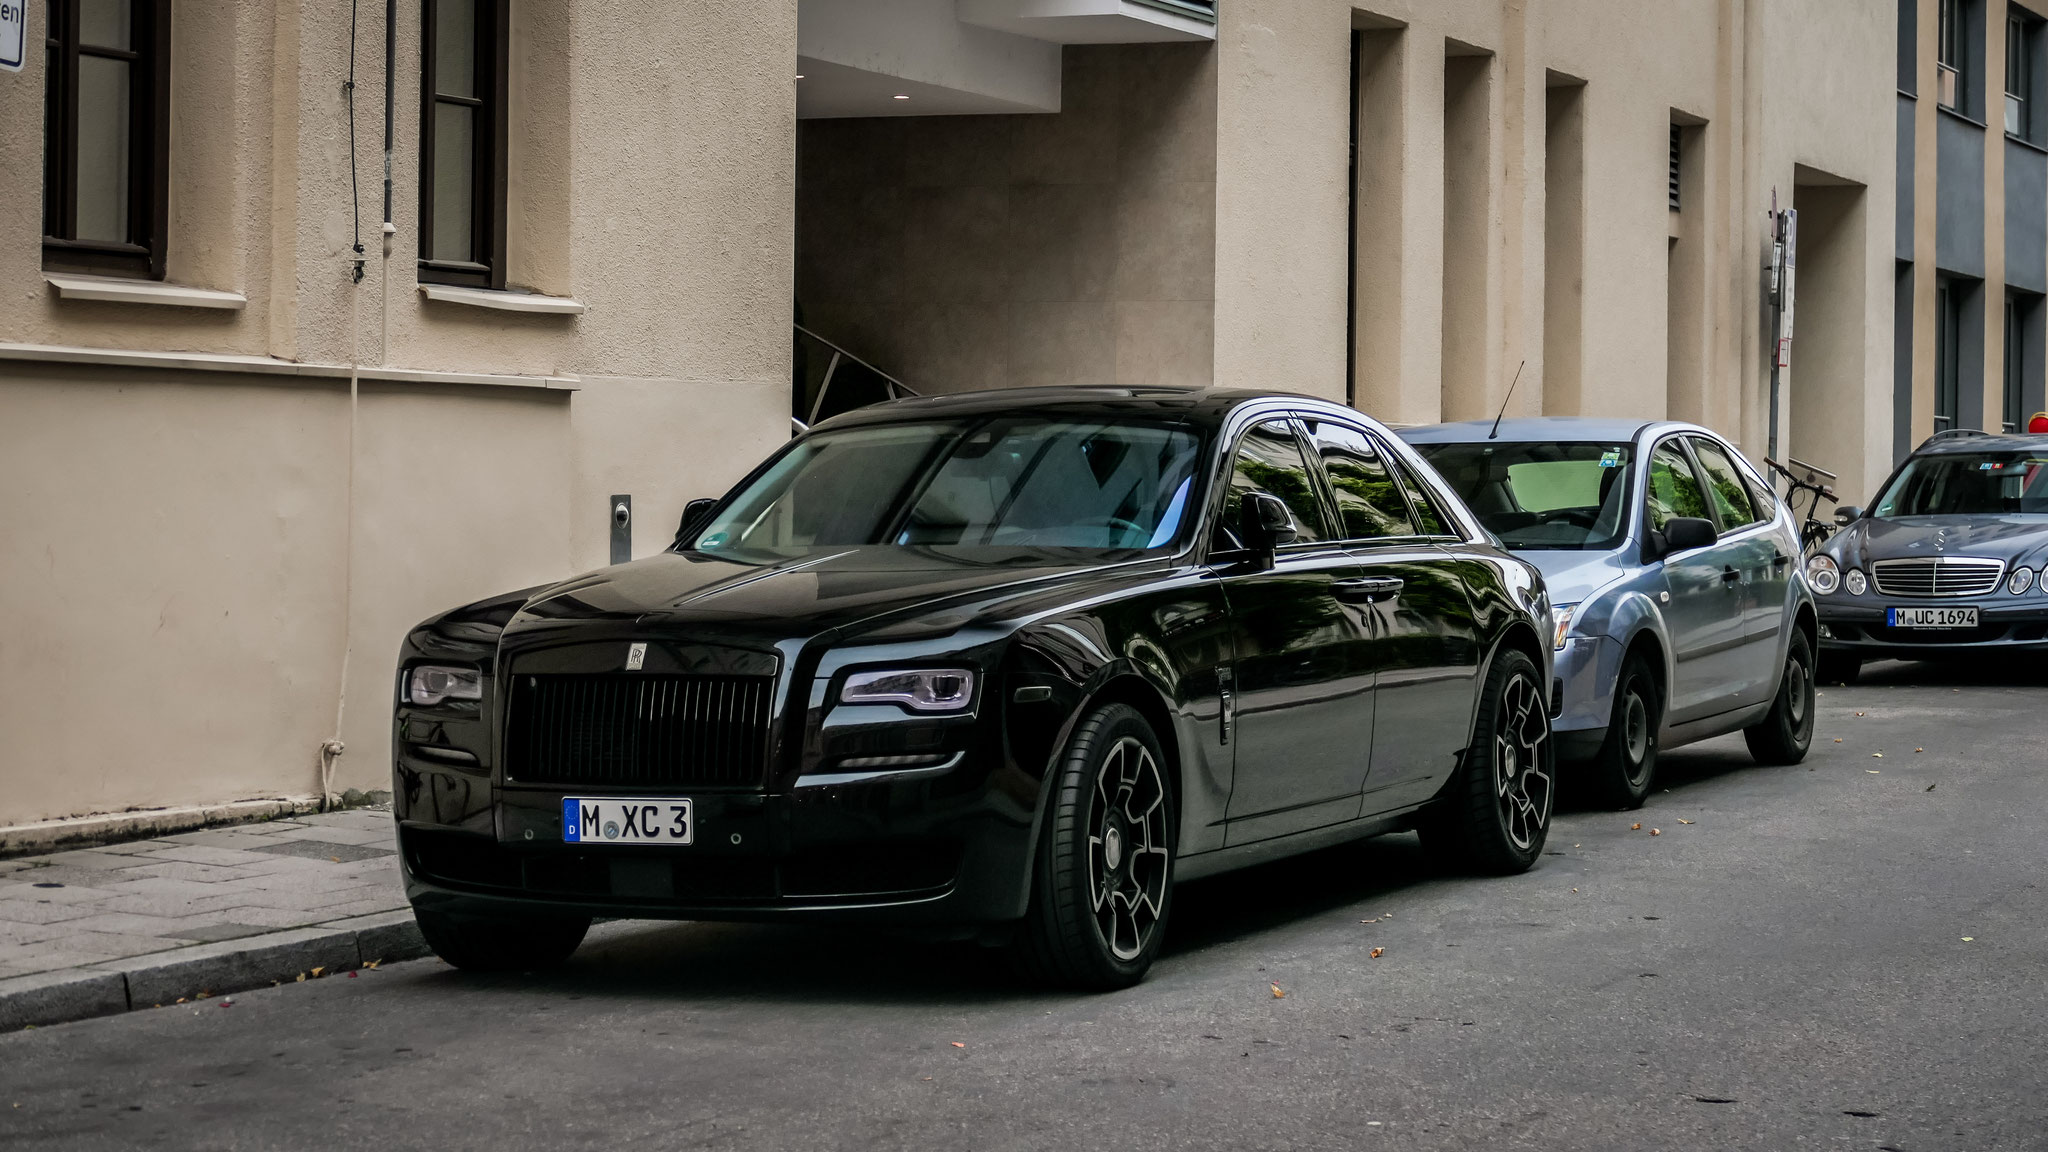 Rolls Royce Ghost Series II - M-XC-3